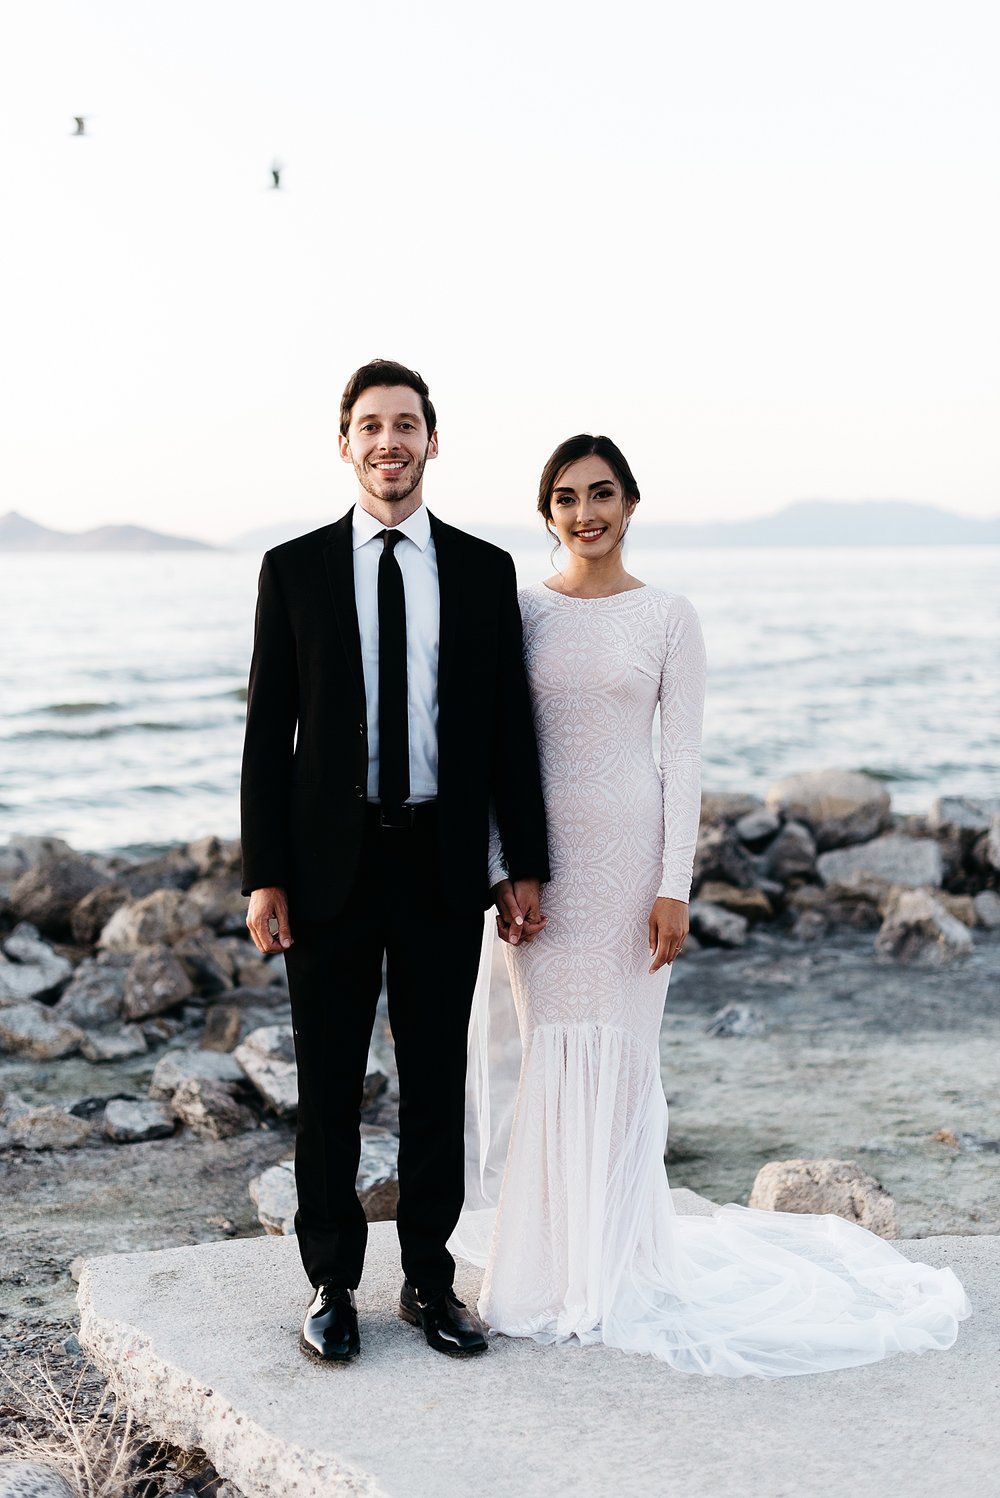 Zandra Barriga Photo - Cassie and Tristan Great Salt Lake Bridas_0018.jpg